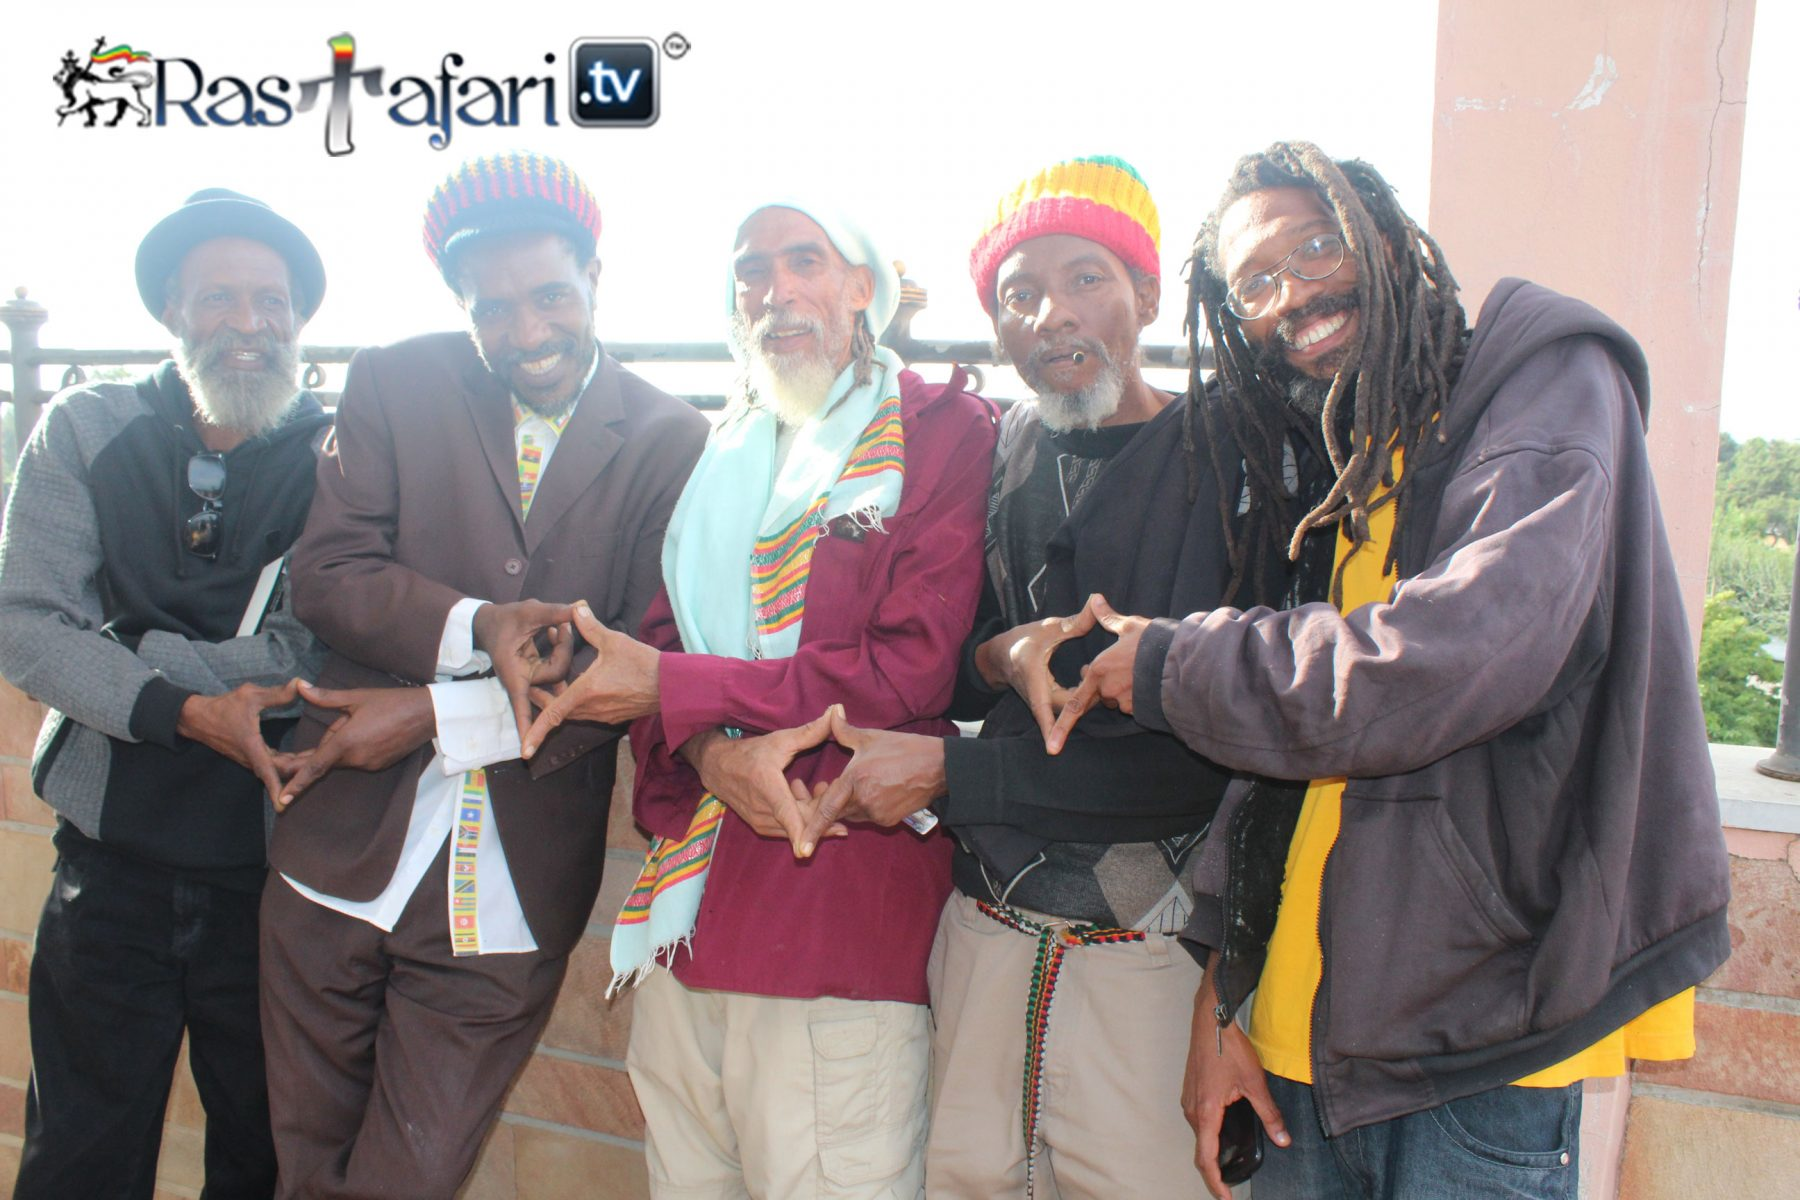 rastafari-tv-footsteps-of-our-emperor-tour81